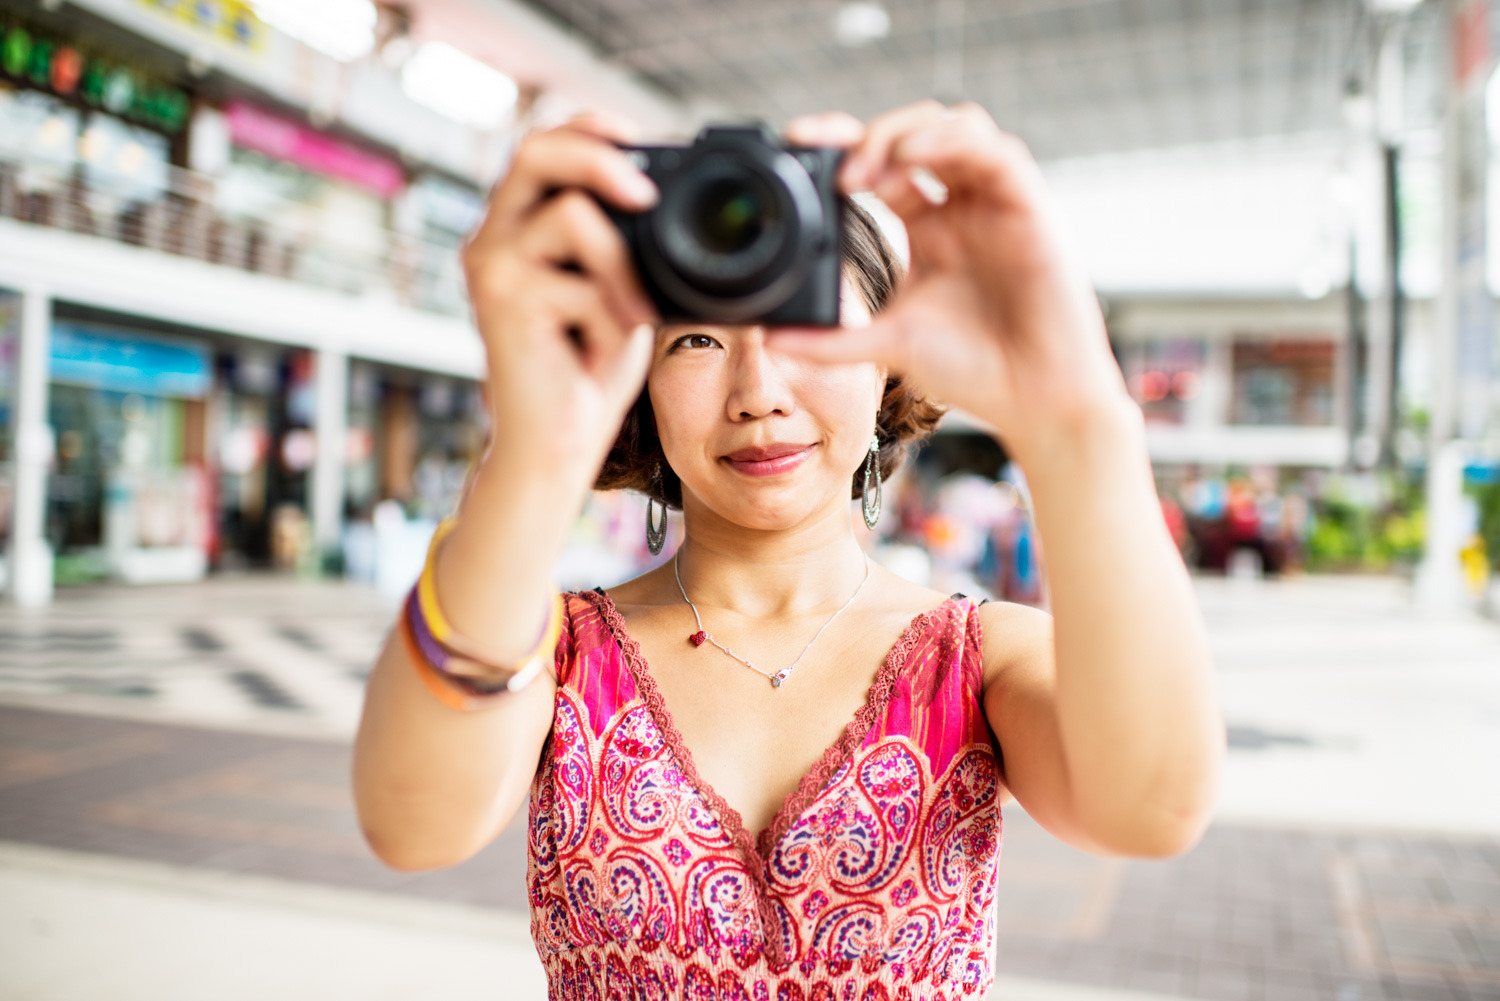 Woman Photographer at the Shopping Mall, moving to manual mode